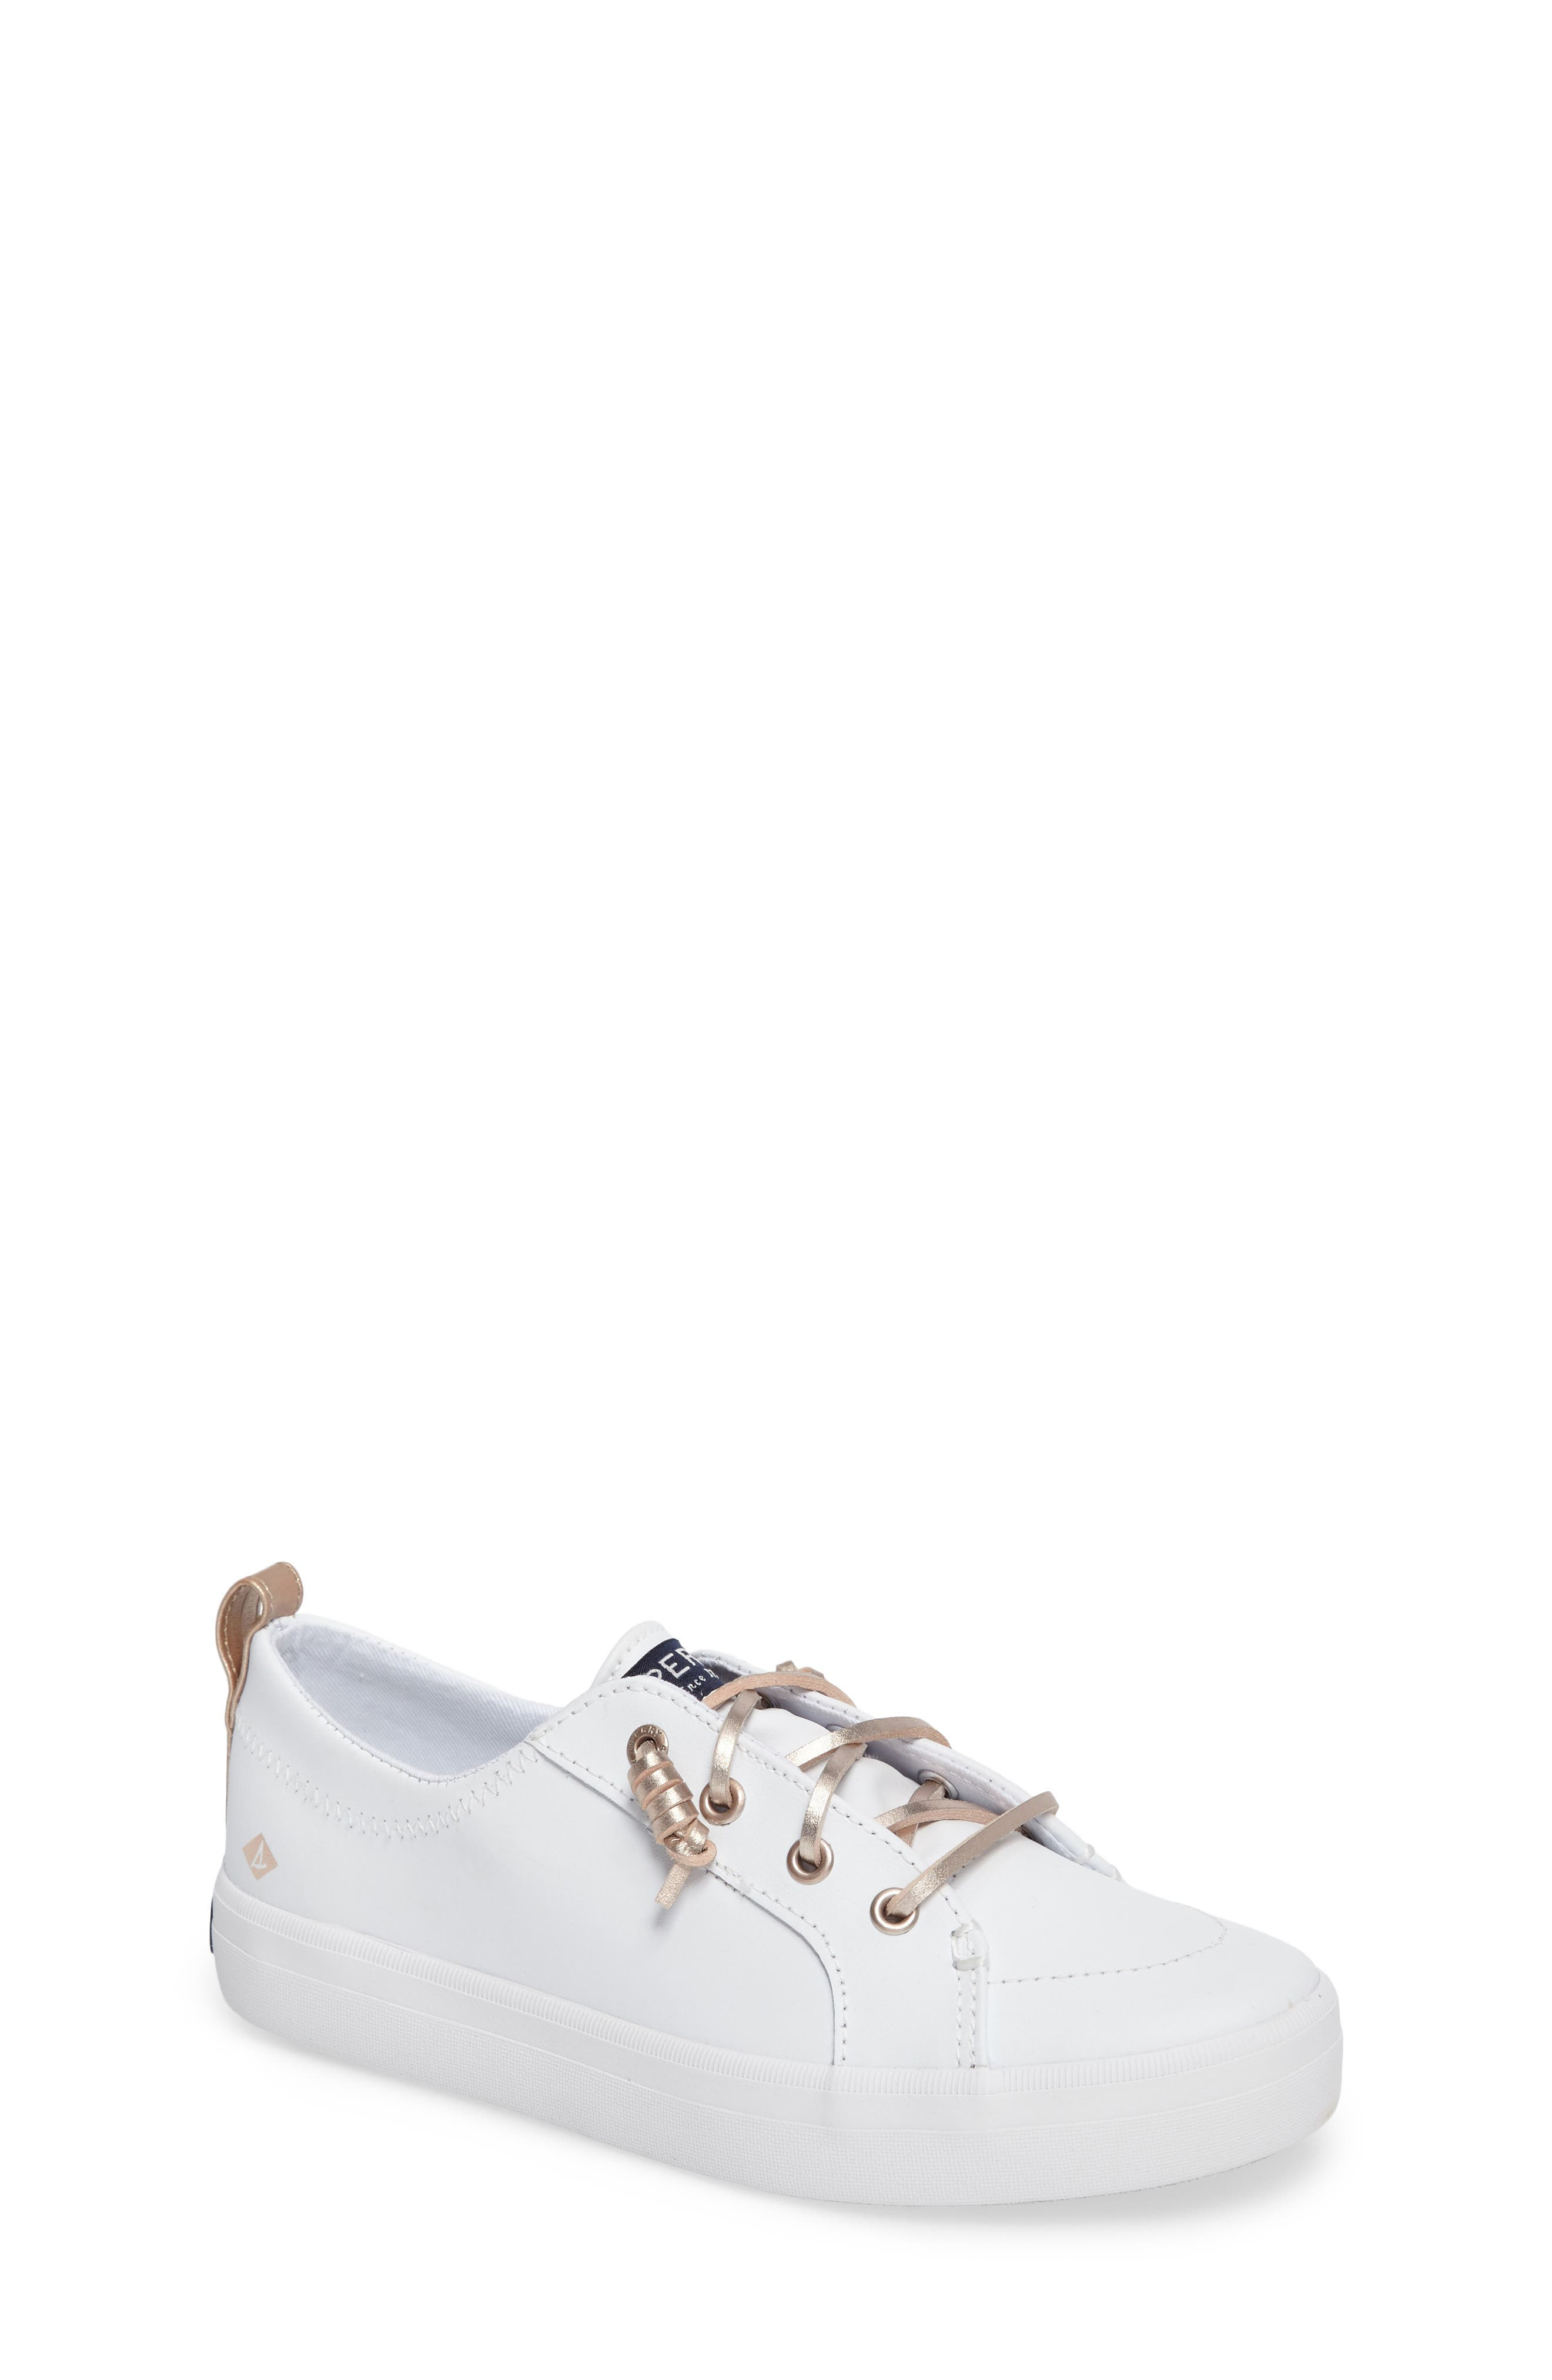 Sperry Crest Vibe Sneaker,                             Main thumbnail 1, color,                             WHITE LEATHER